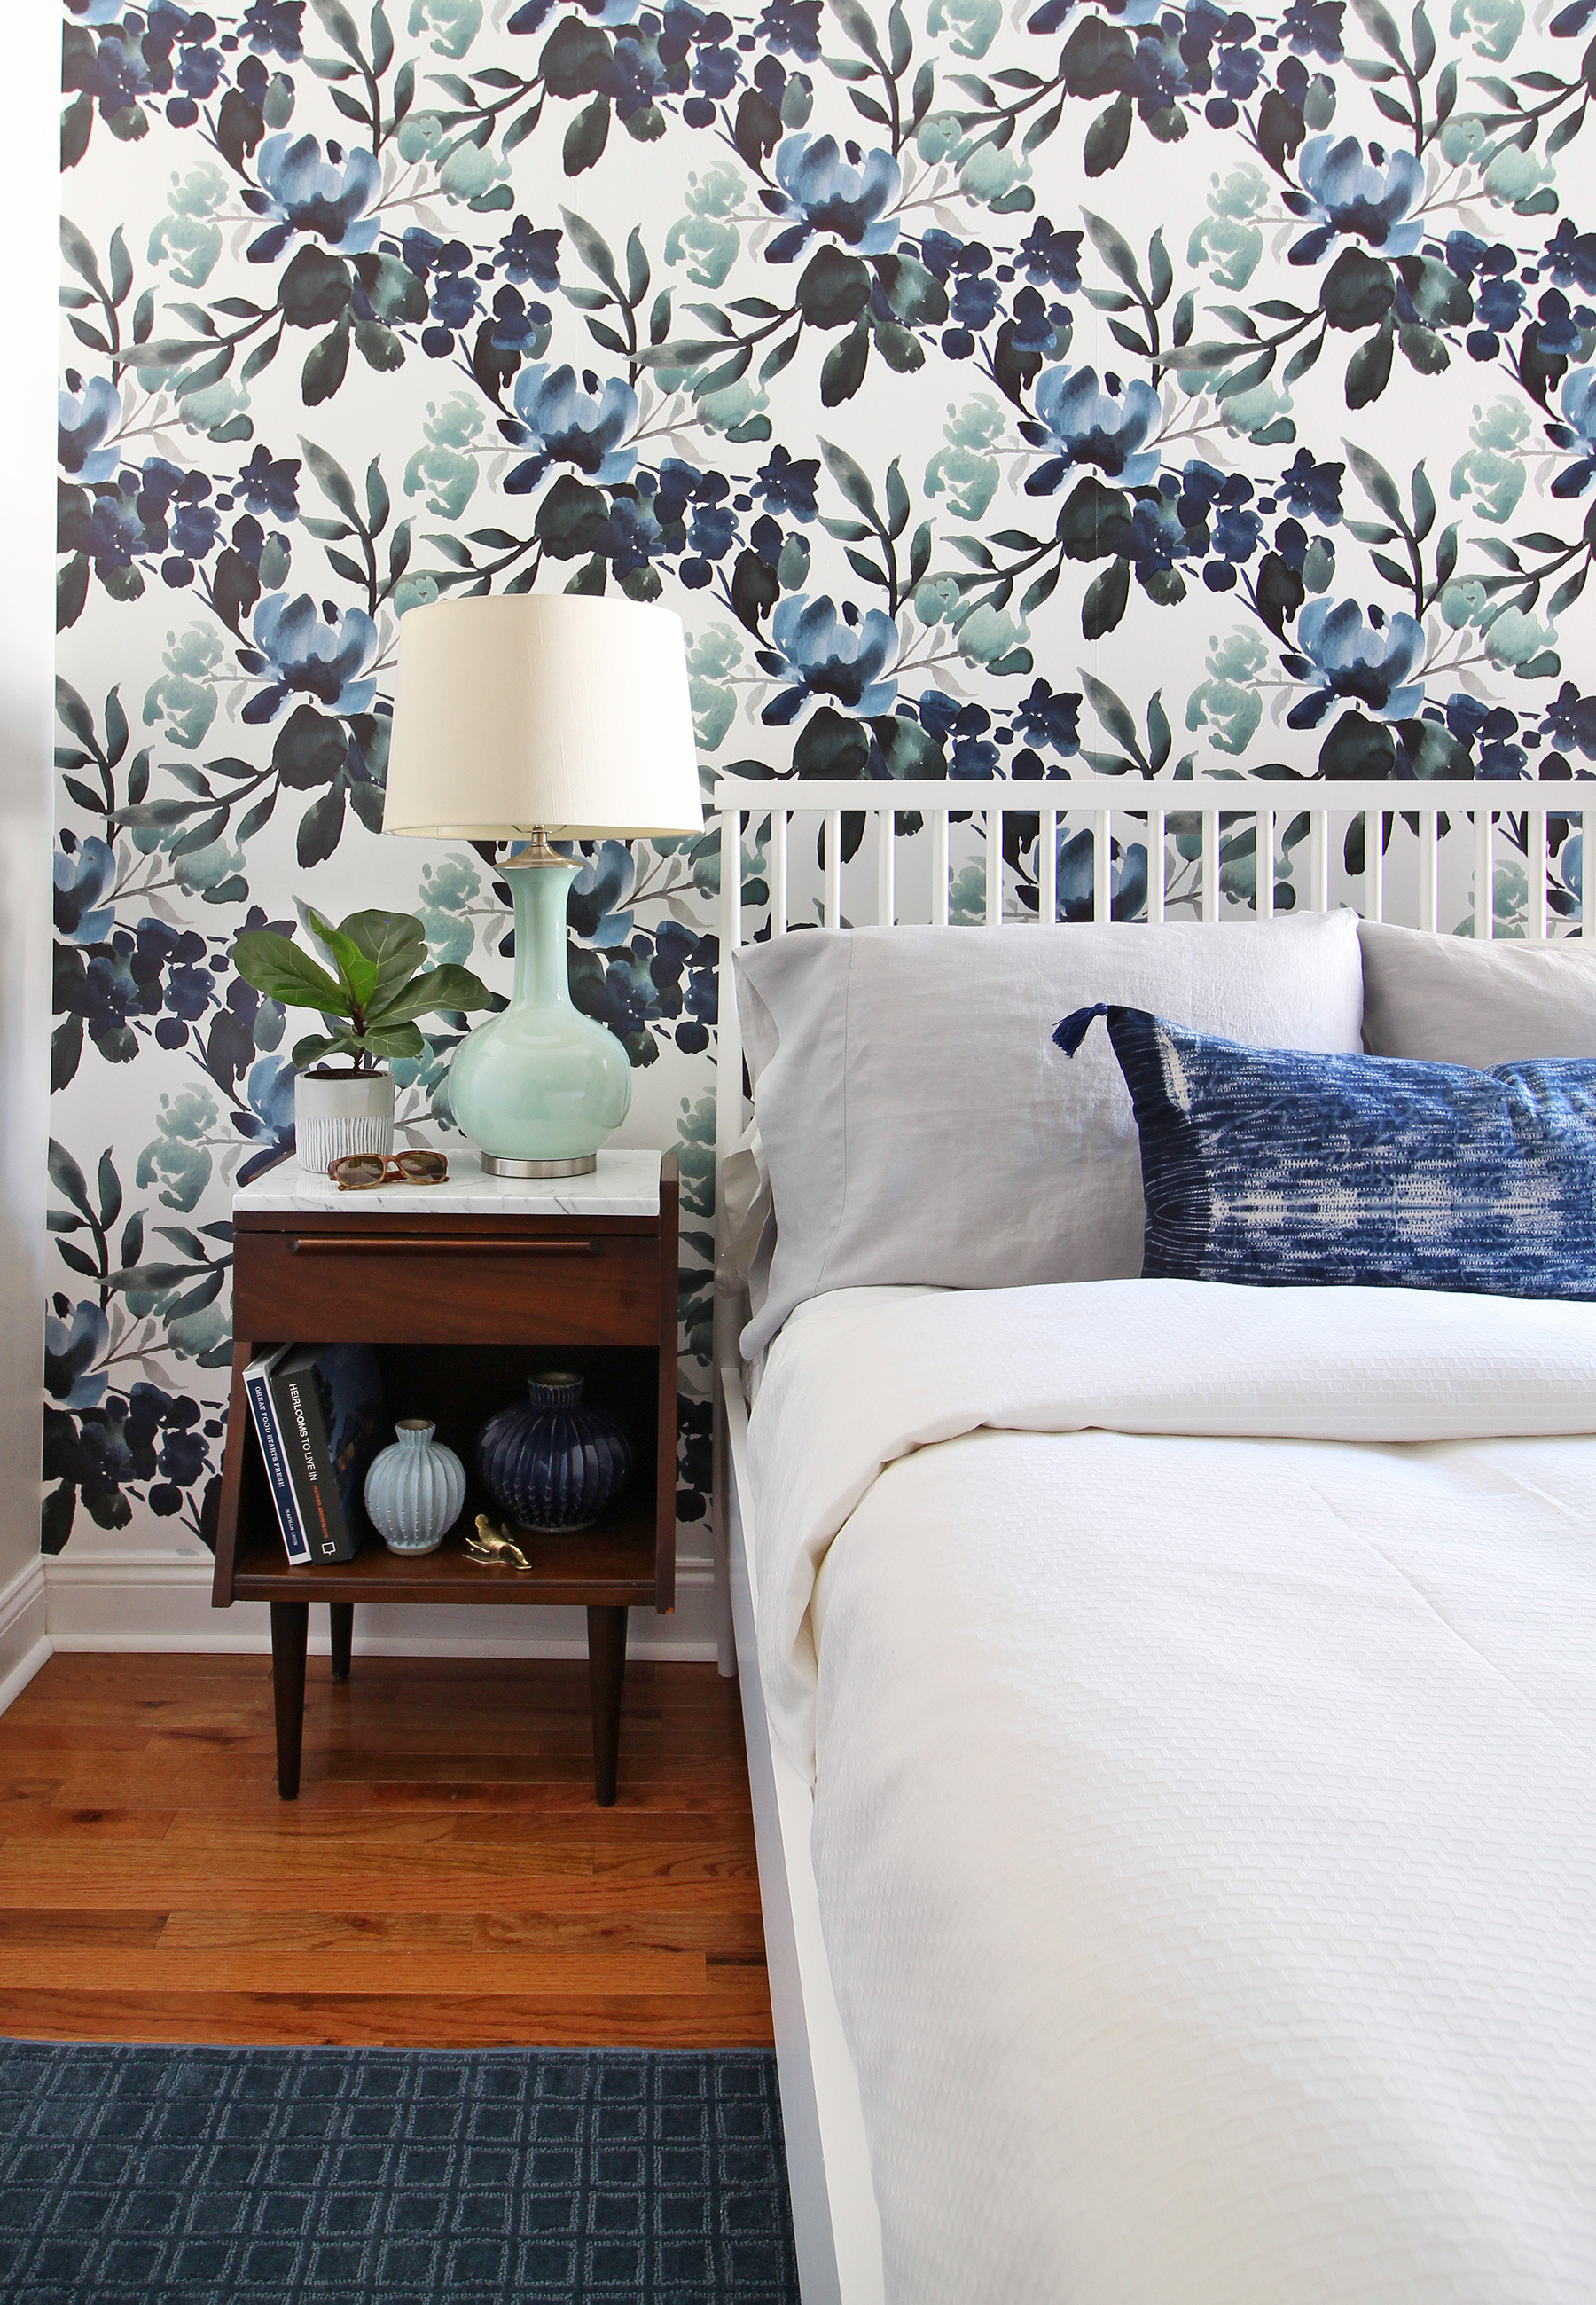 Have you ever tried temporary wallpaper in your home? There are so many good options out there now, and they give you a chance to add some serious fun and pattern to a room without the full commitment of permanent wallpaper. Come see my list of favorites (including this pretty blue green floral) over on the blog.